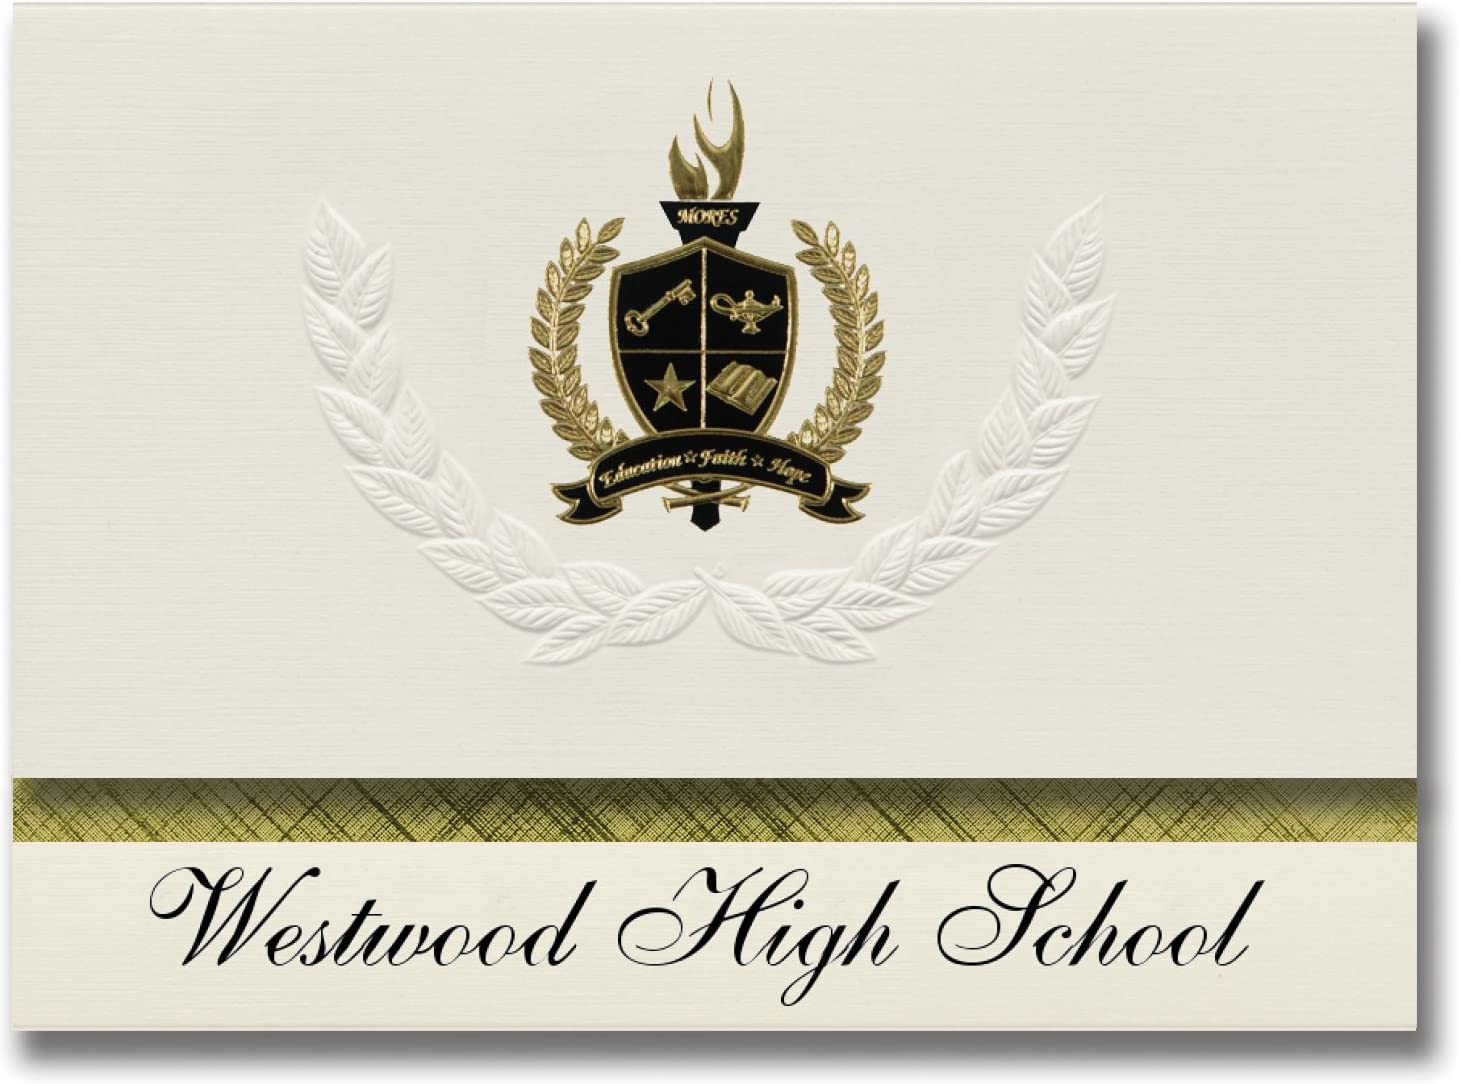 Signature Announcements Westwood High School (Gillette, WY) Graduation Announcements, Presidential style, Basic package of 25 with Gold & Black Metallic Foil seal